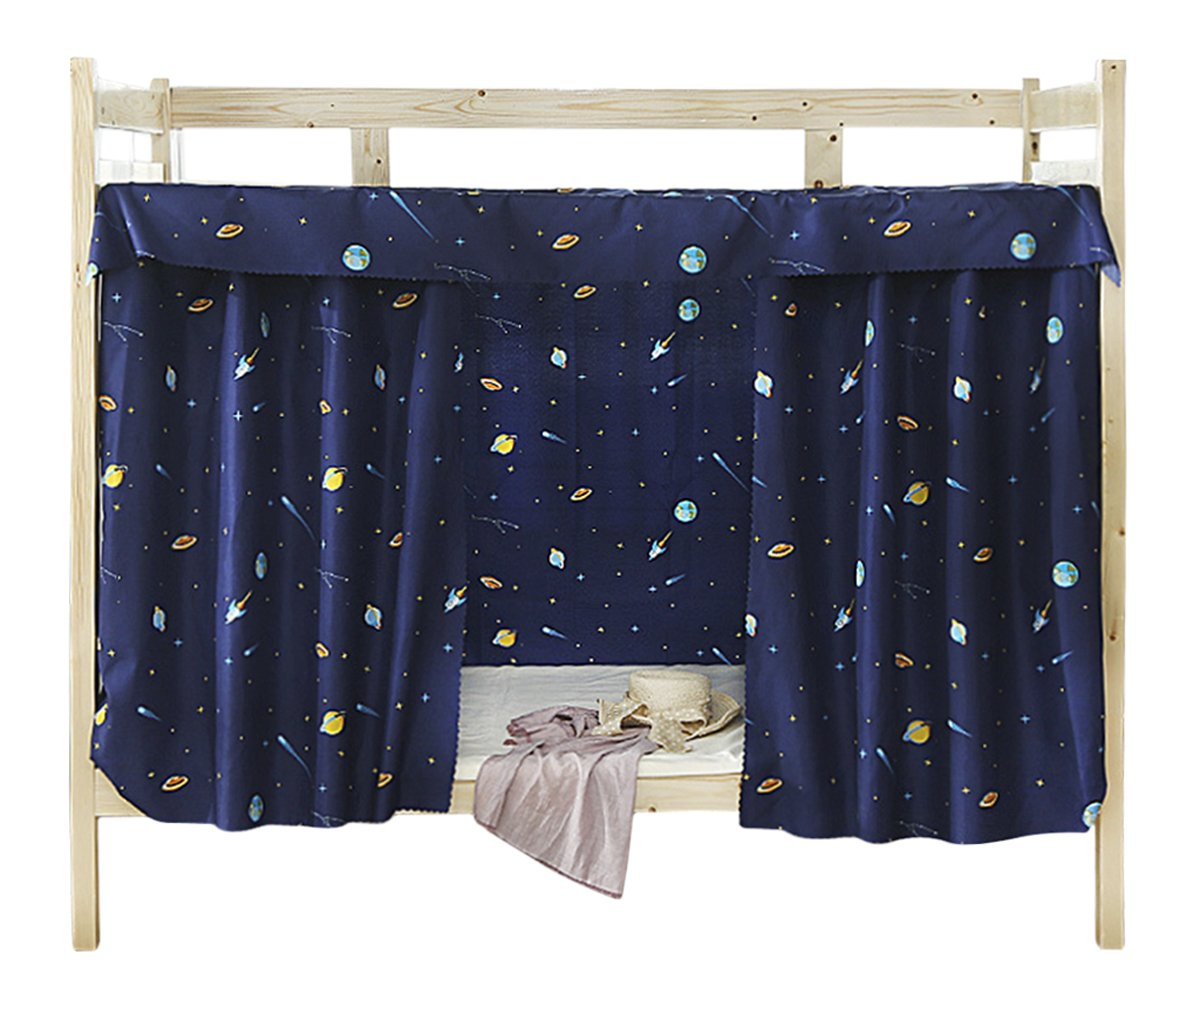 Cabin Bunk Bed Tent Curtain Cloth Dormitory Mid-sleeper Bed Canopy Spread Blackout Curtains Dustproof Mosquito Protection Screen Net BXT